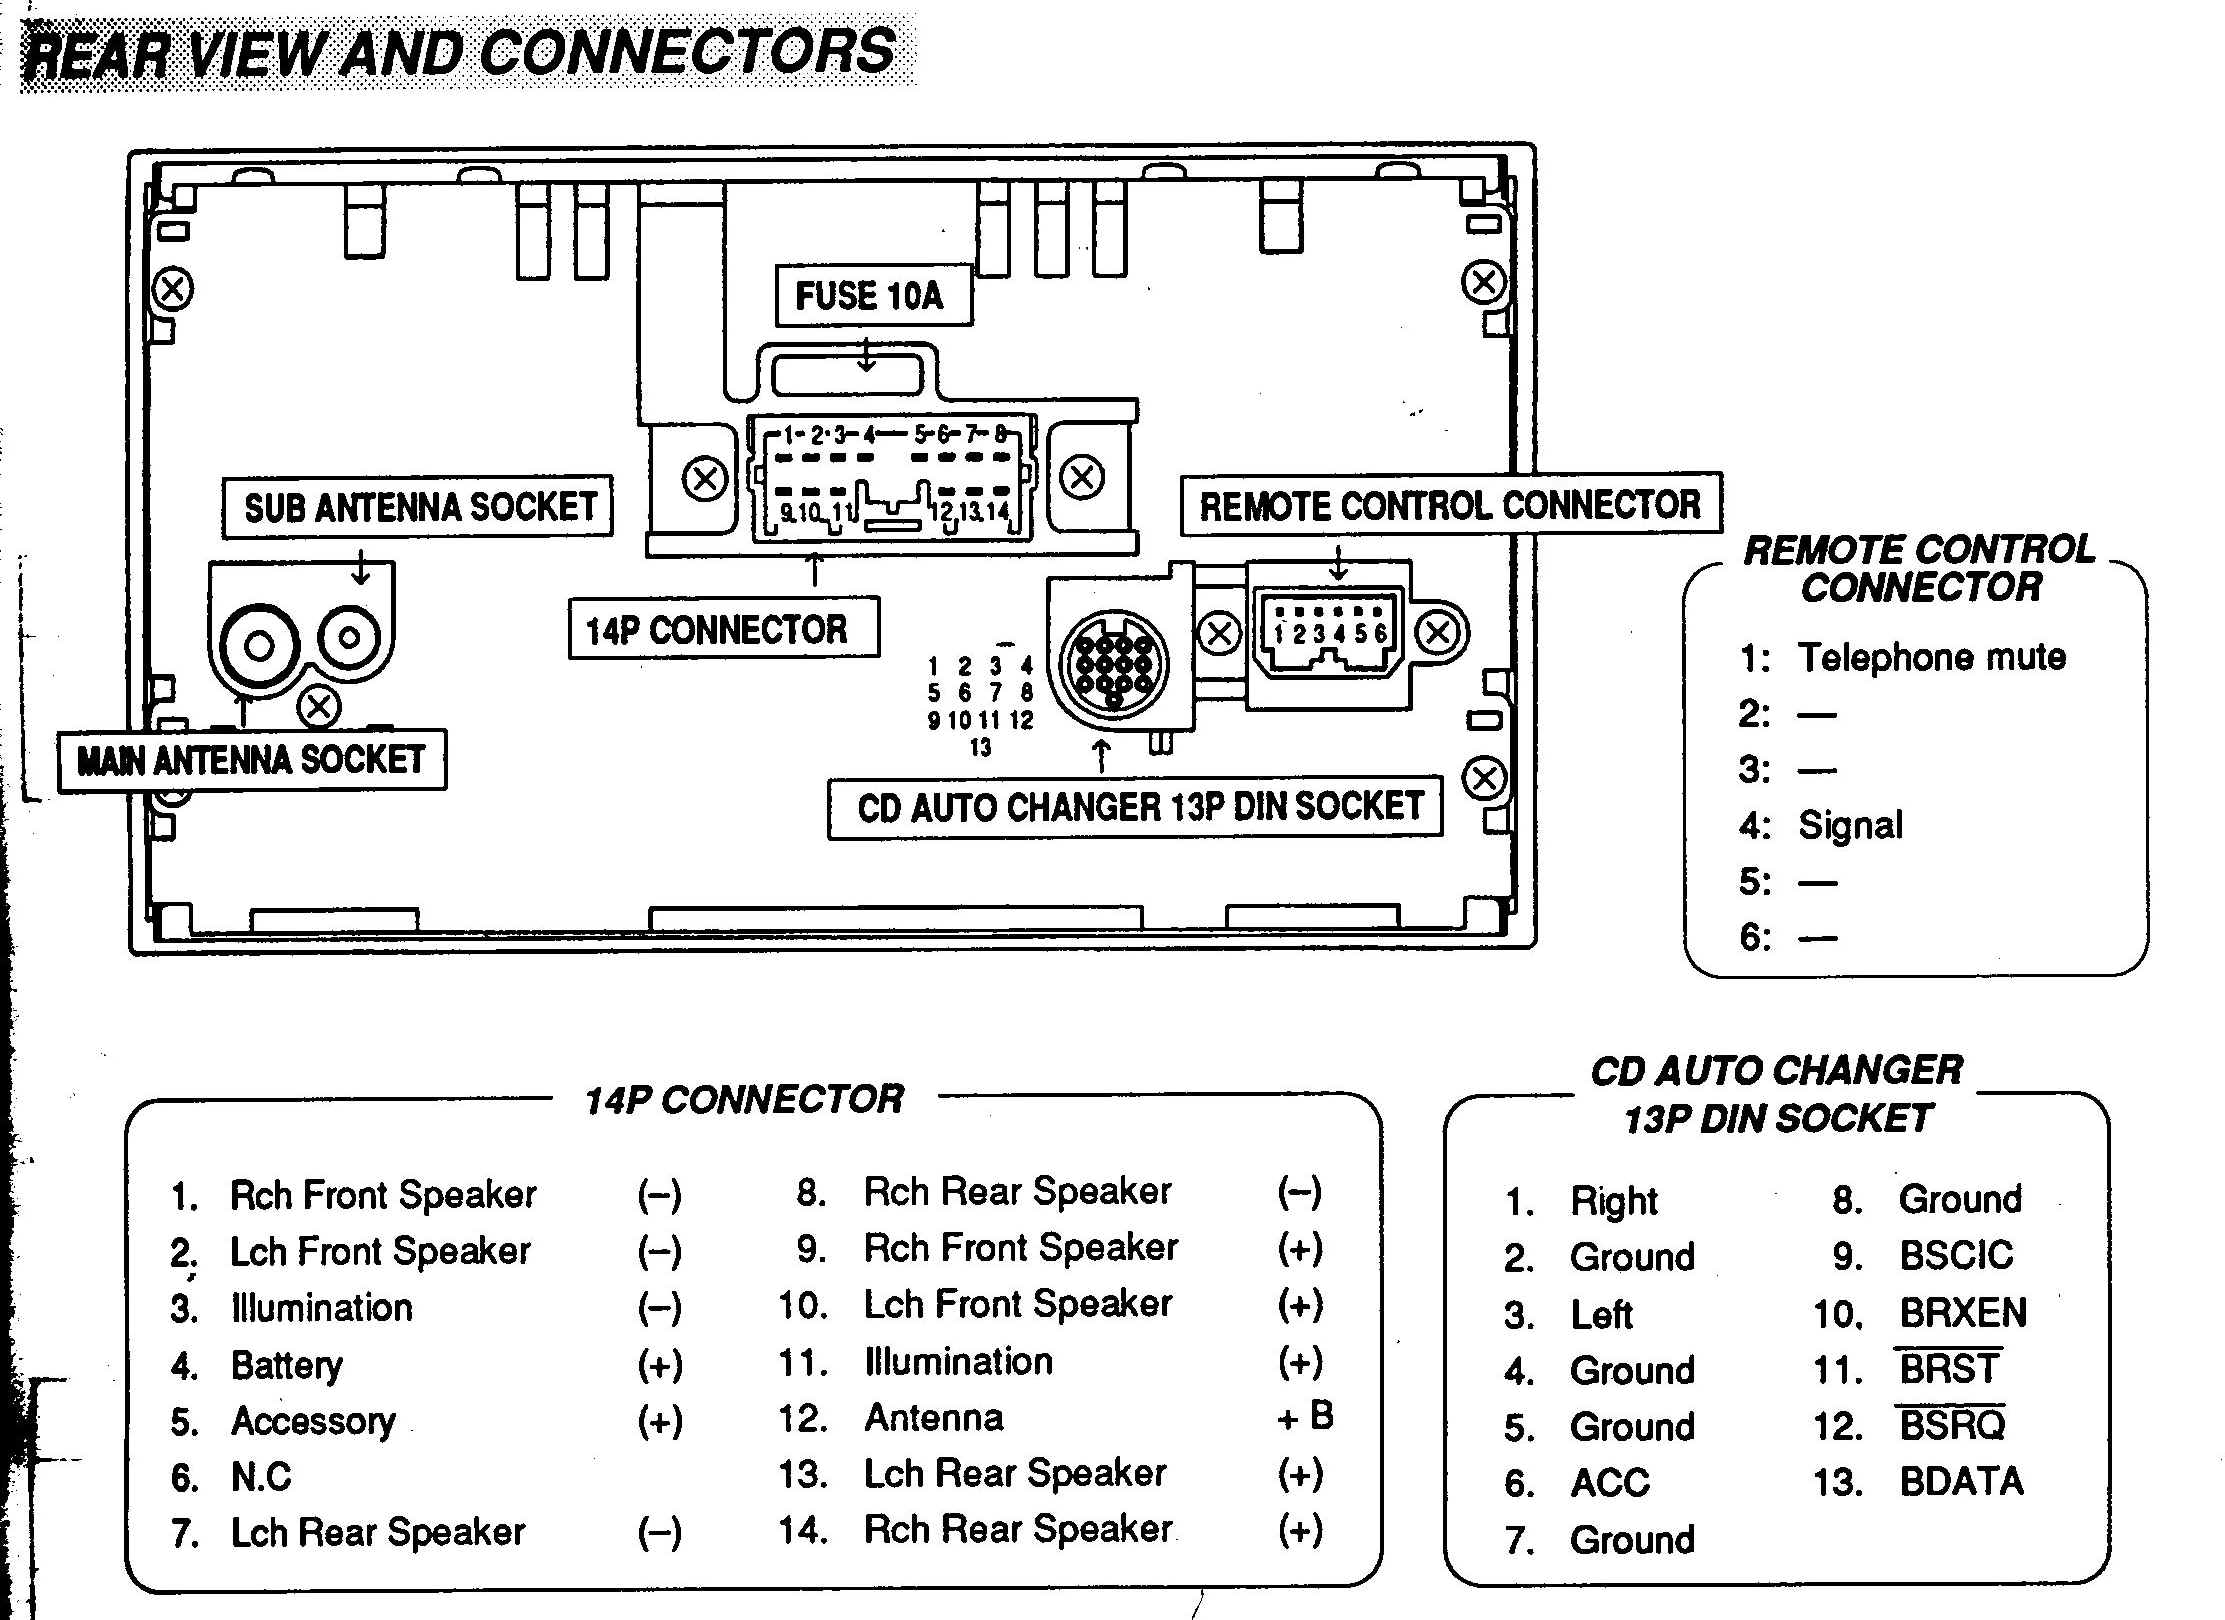 WireHarnessMit121003 isuzu radio wiring diagram 2003 isuzu rodeo radio wiring diagram 1995 mustang radio wiring diagram at mifinder.co